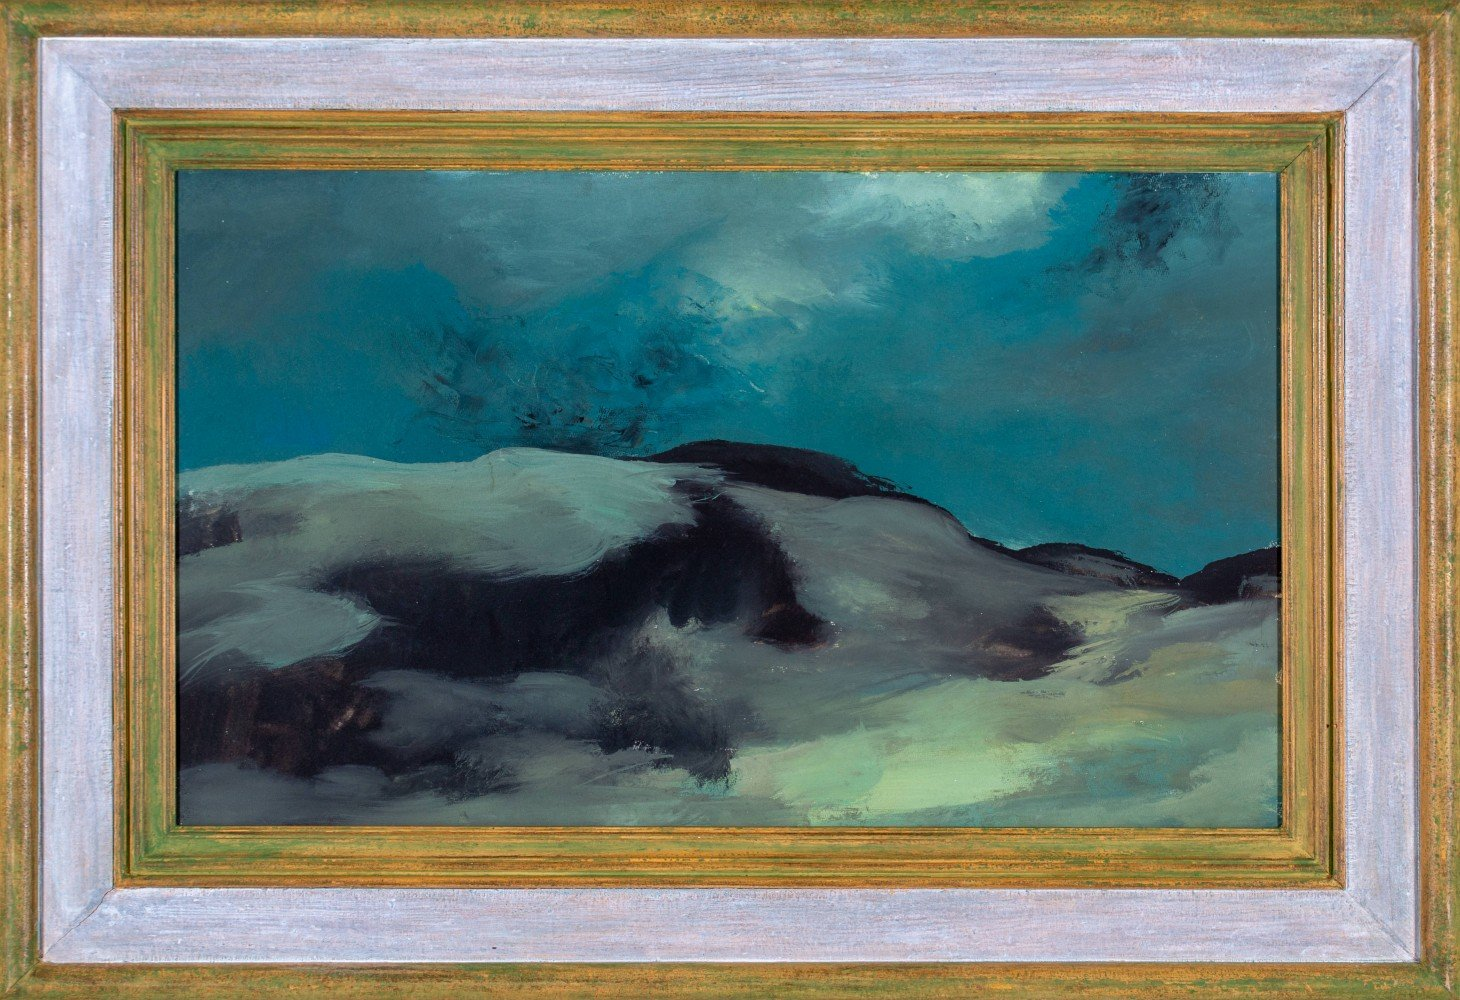 Landscape Oil on Board Painting: